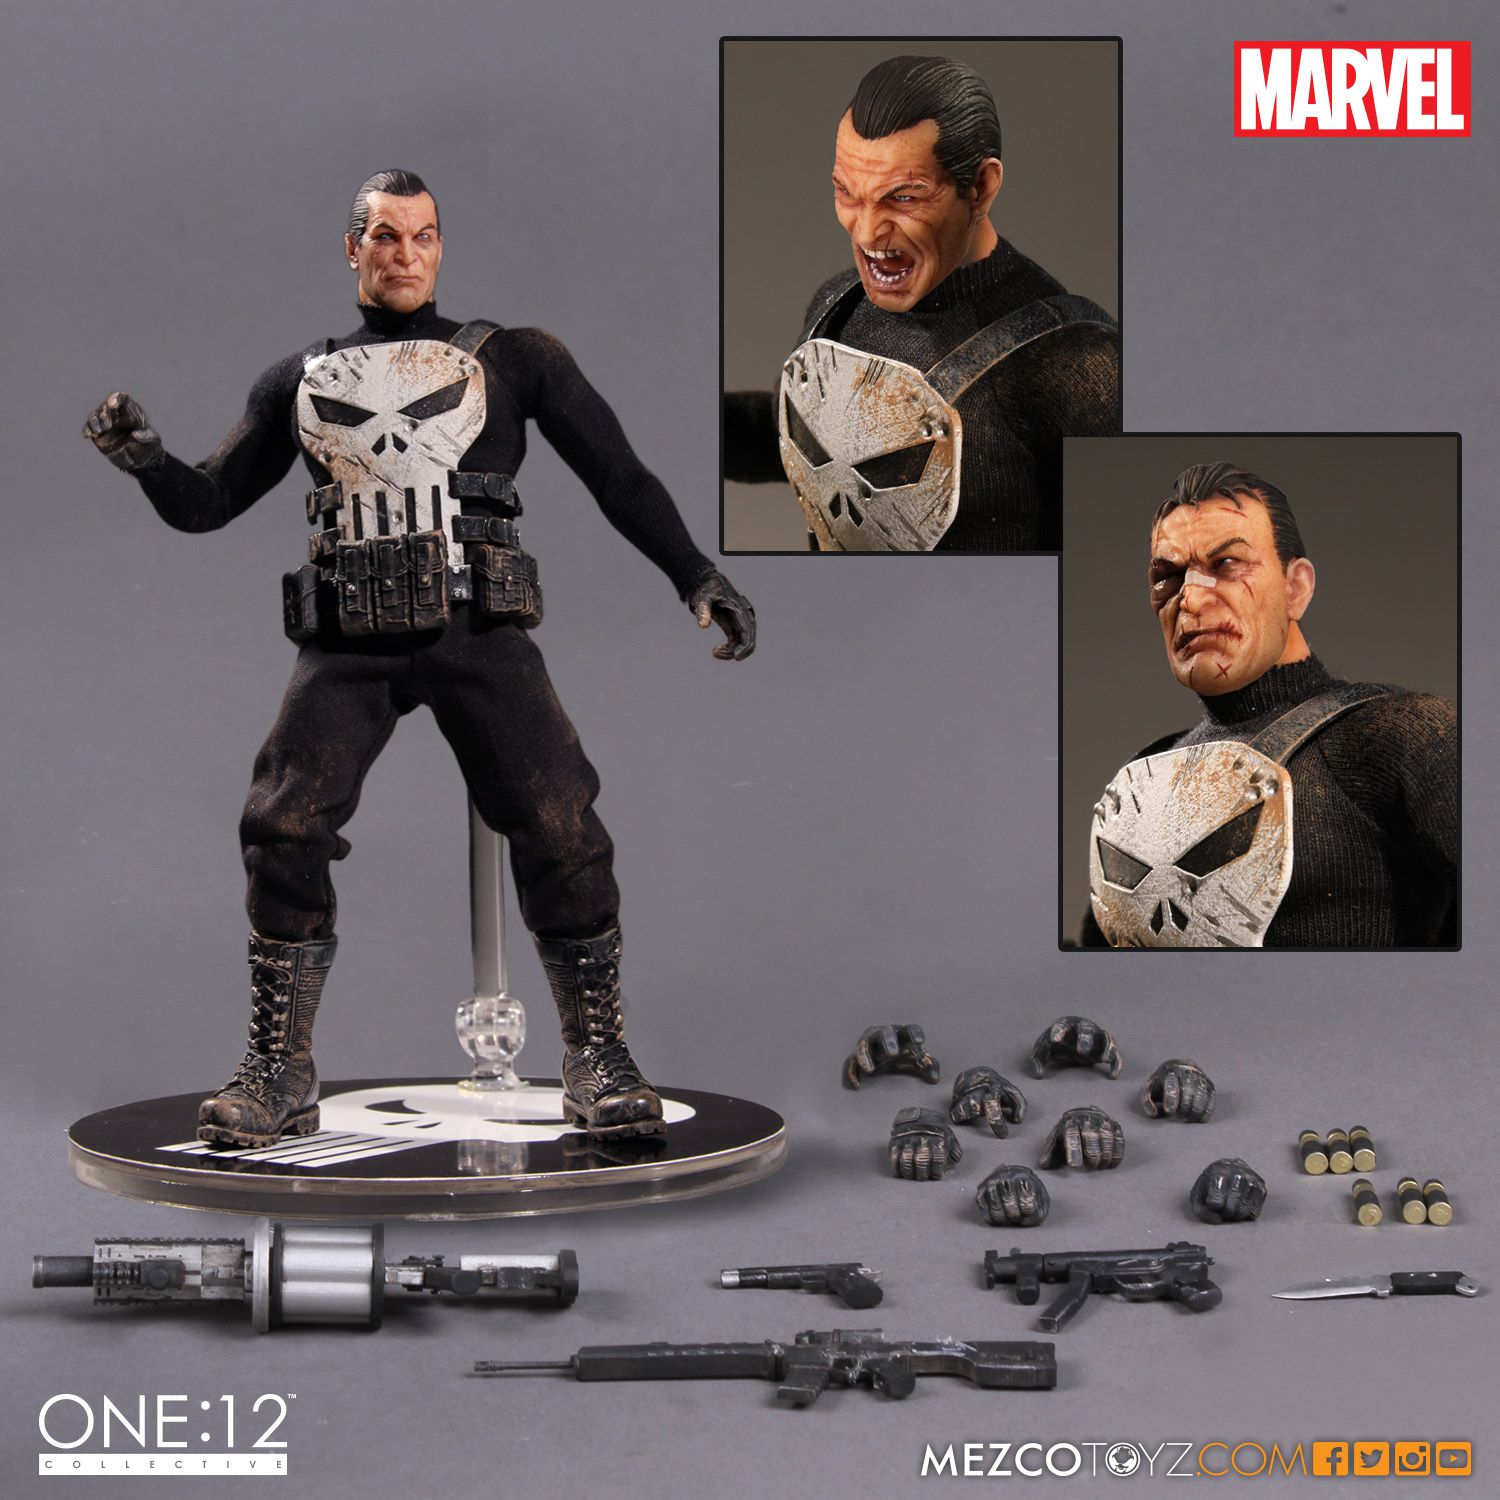 MEZCO the PUNISHER 1:12 COLLECTIVE Action Figure Toys mezco the punisher figure one 12 collective 6 action figure free shipping